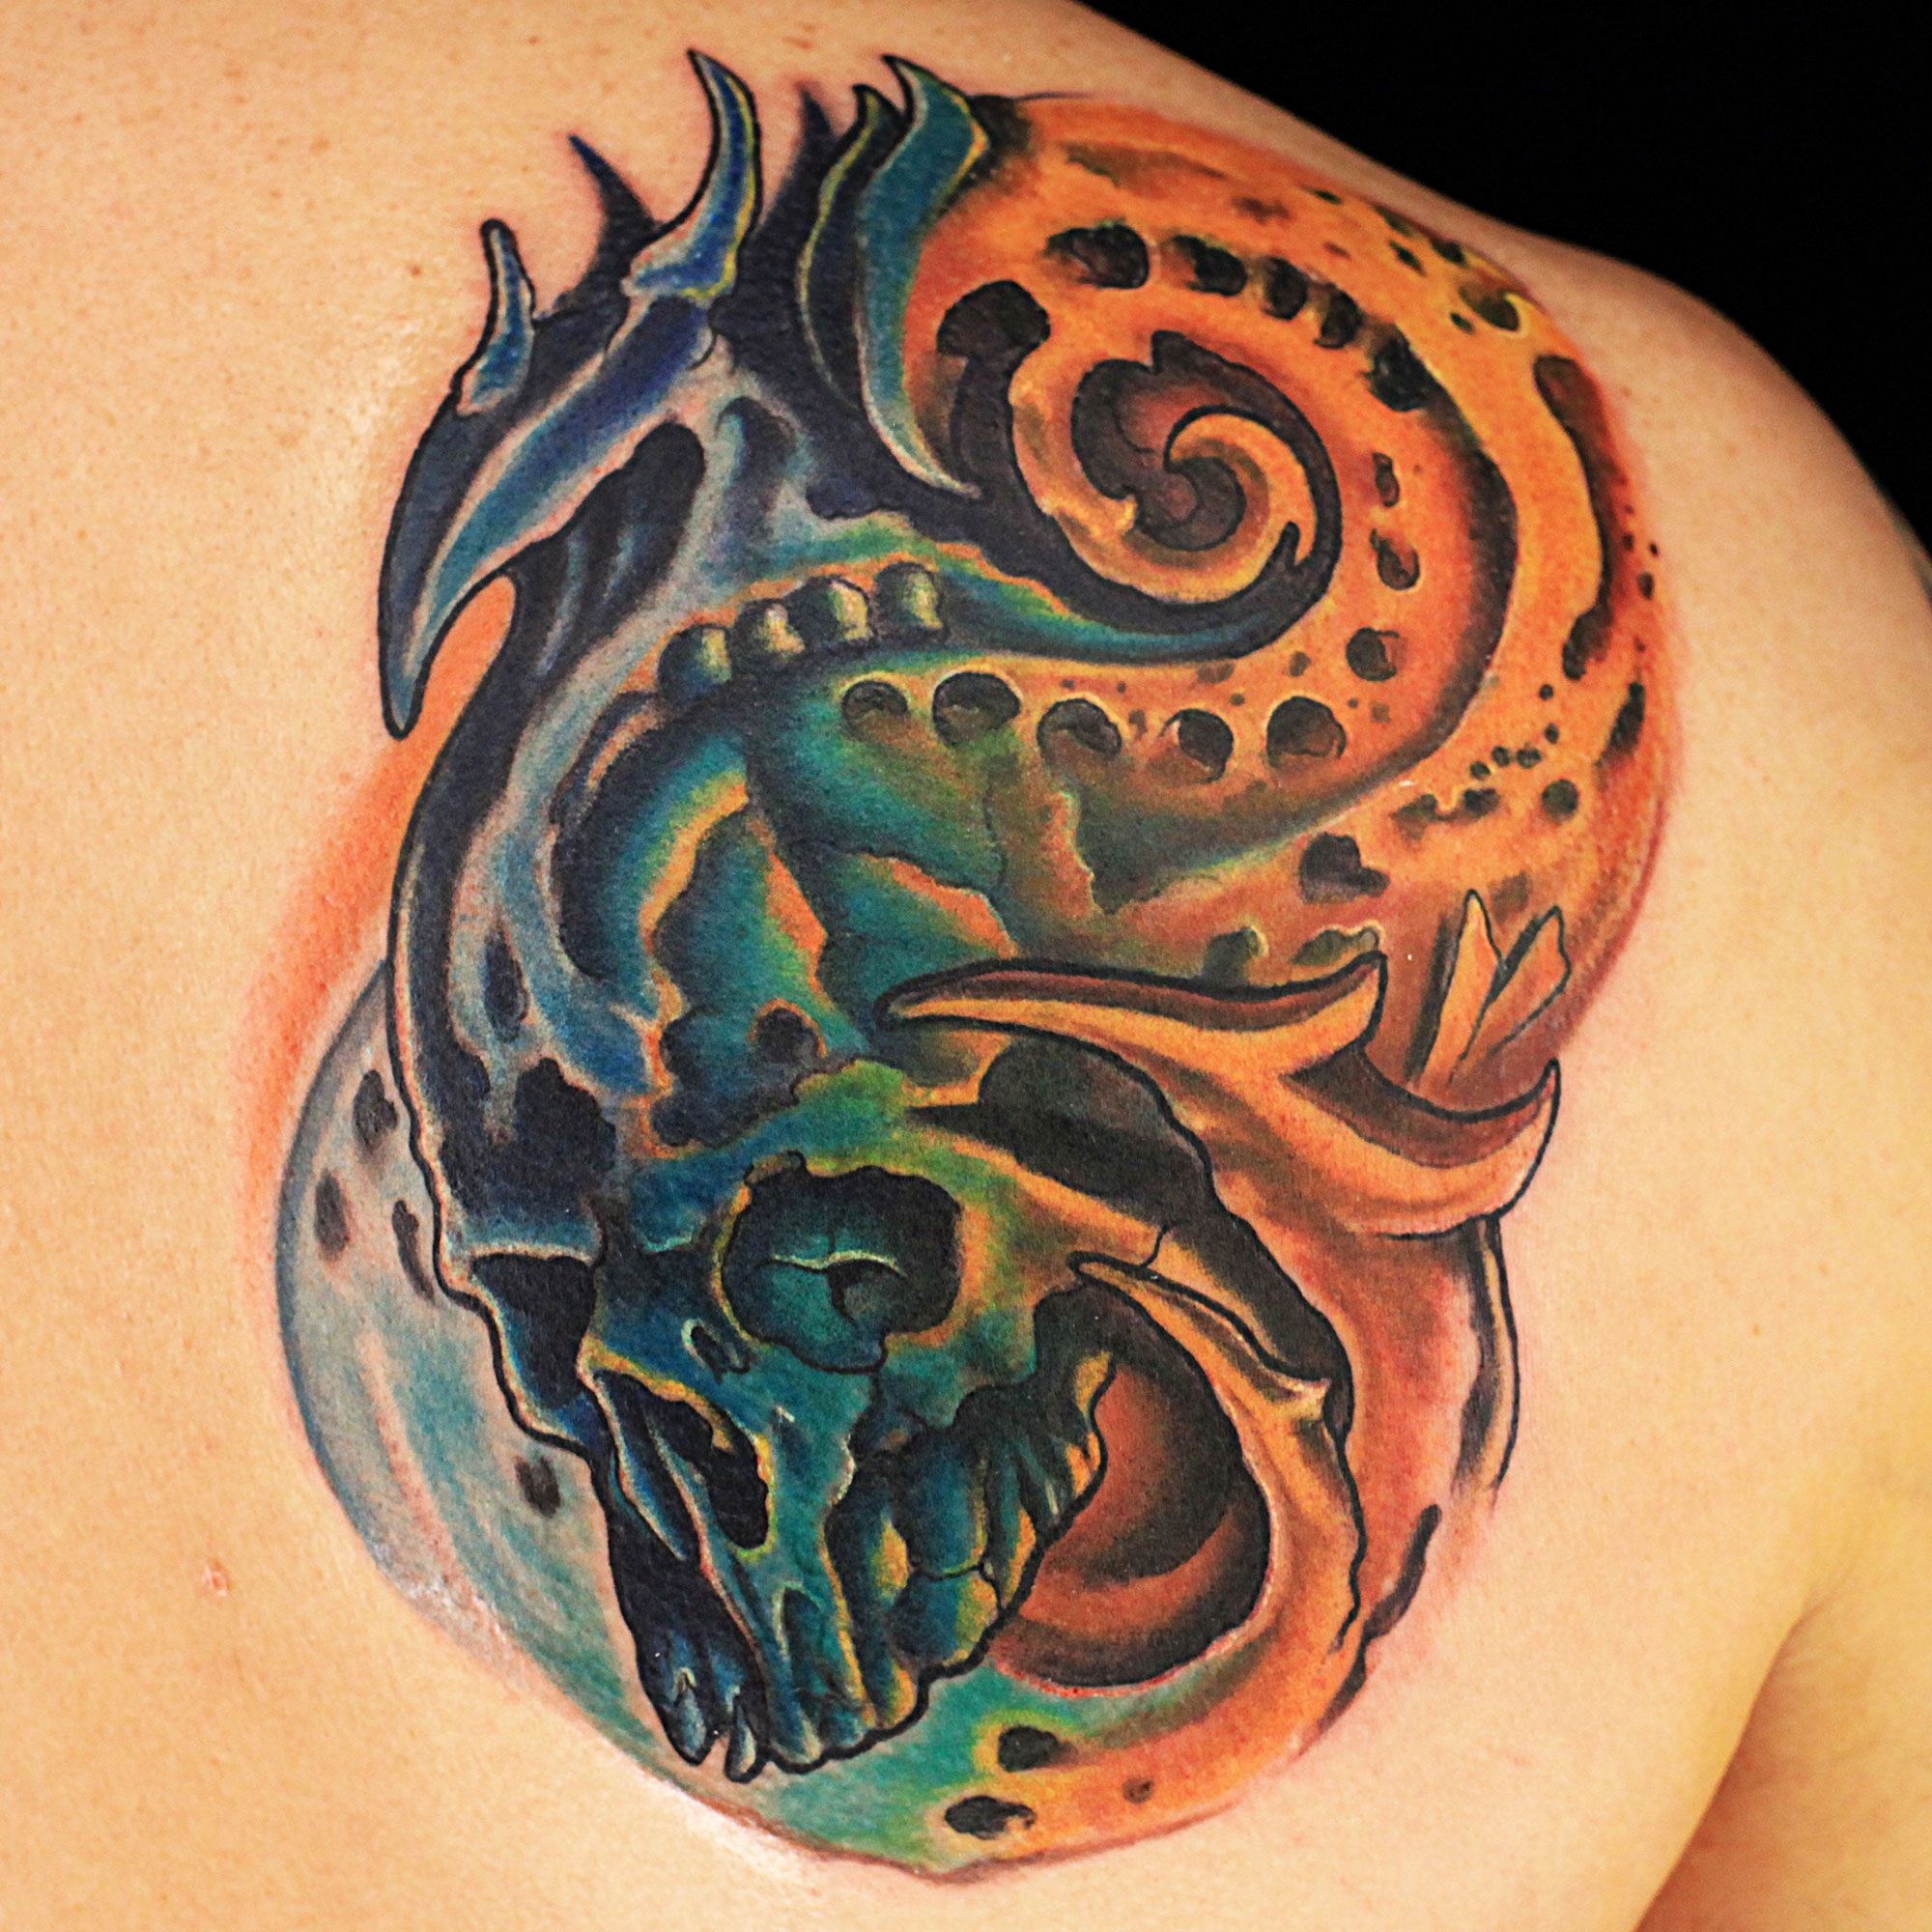 Tattoo done by Jason Clay Dunn on iNk Master season 3